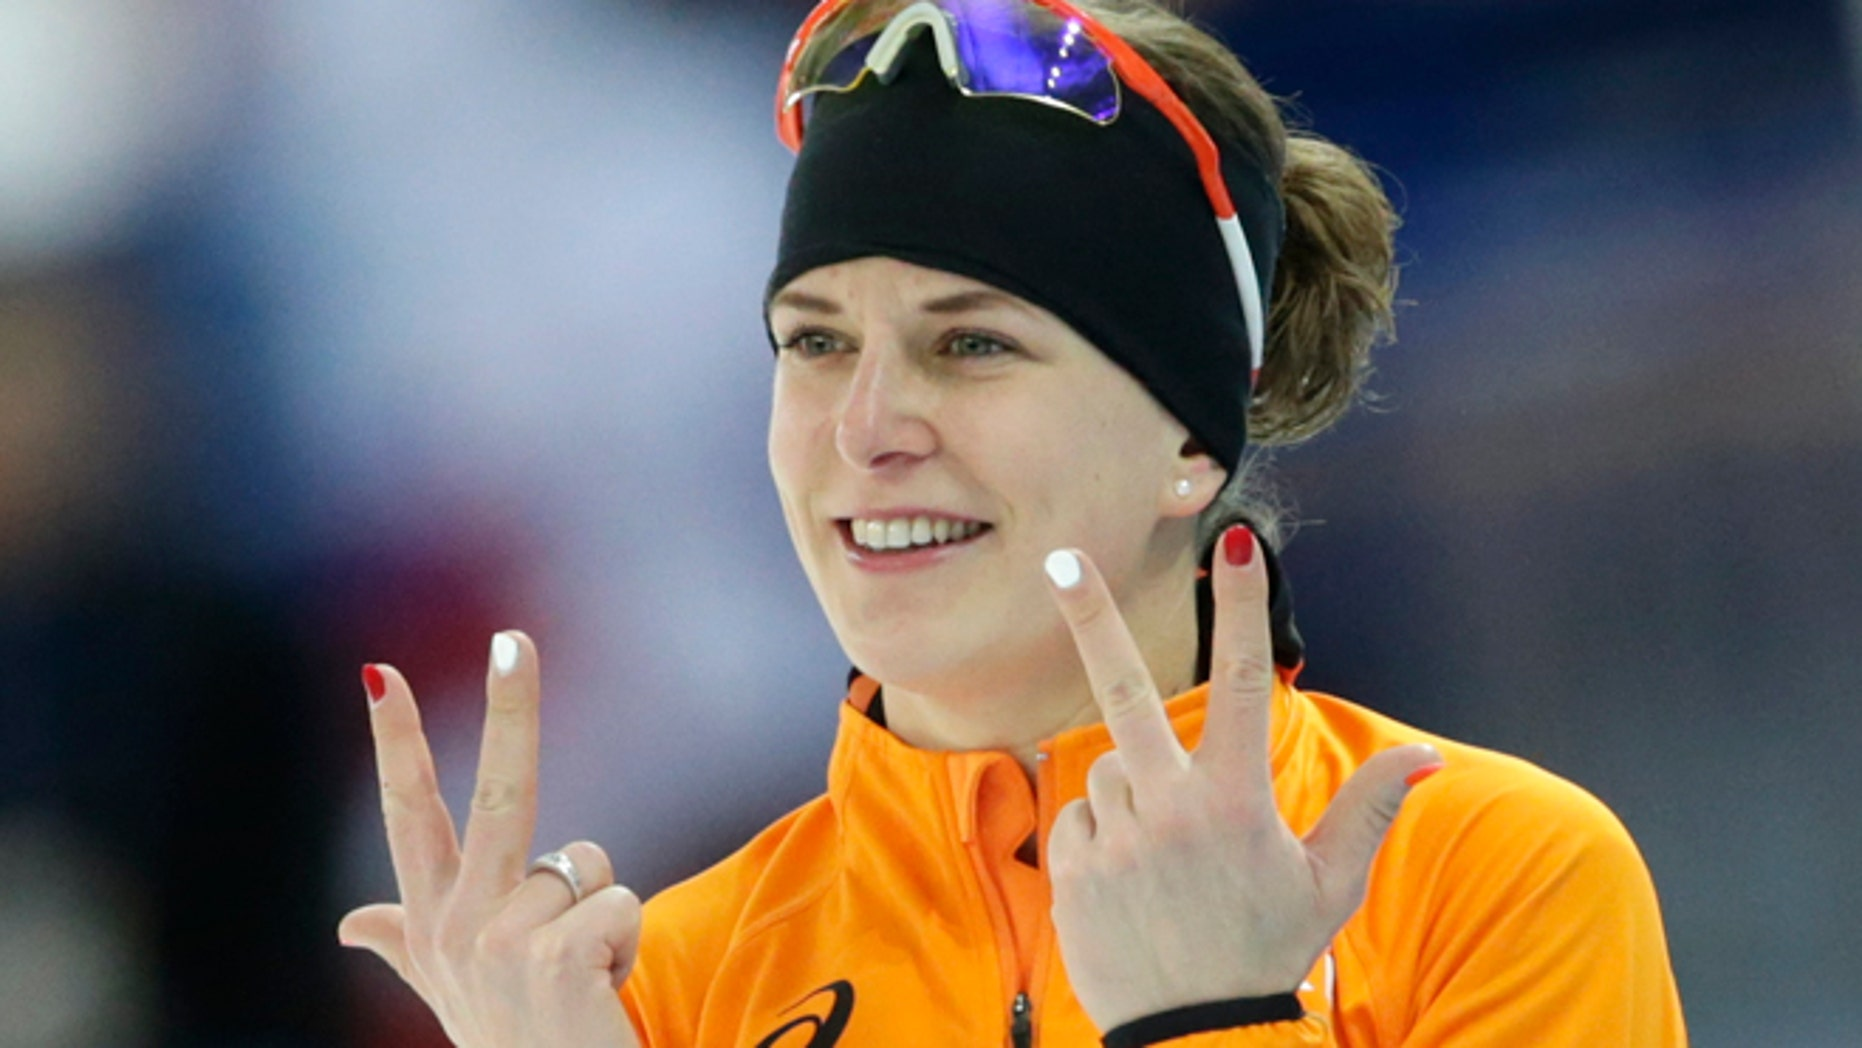 Feb. 9, 2014: Ireen Wust of the Netherlands flashes three fingers in each hand, indicating her third olympic gold medal, after winning gold in the women's 3,000-meter speedskating race at the Adler Arena Skating Center during the 2014 Winter Olympics in Sochi, Russia.